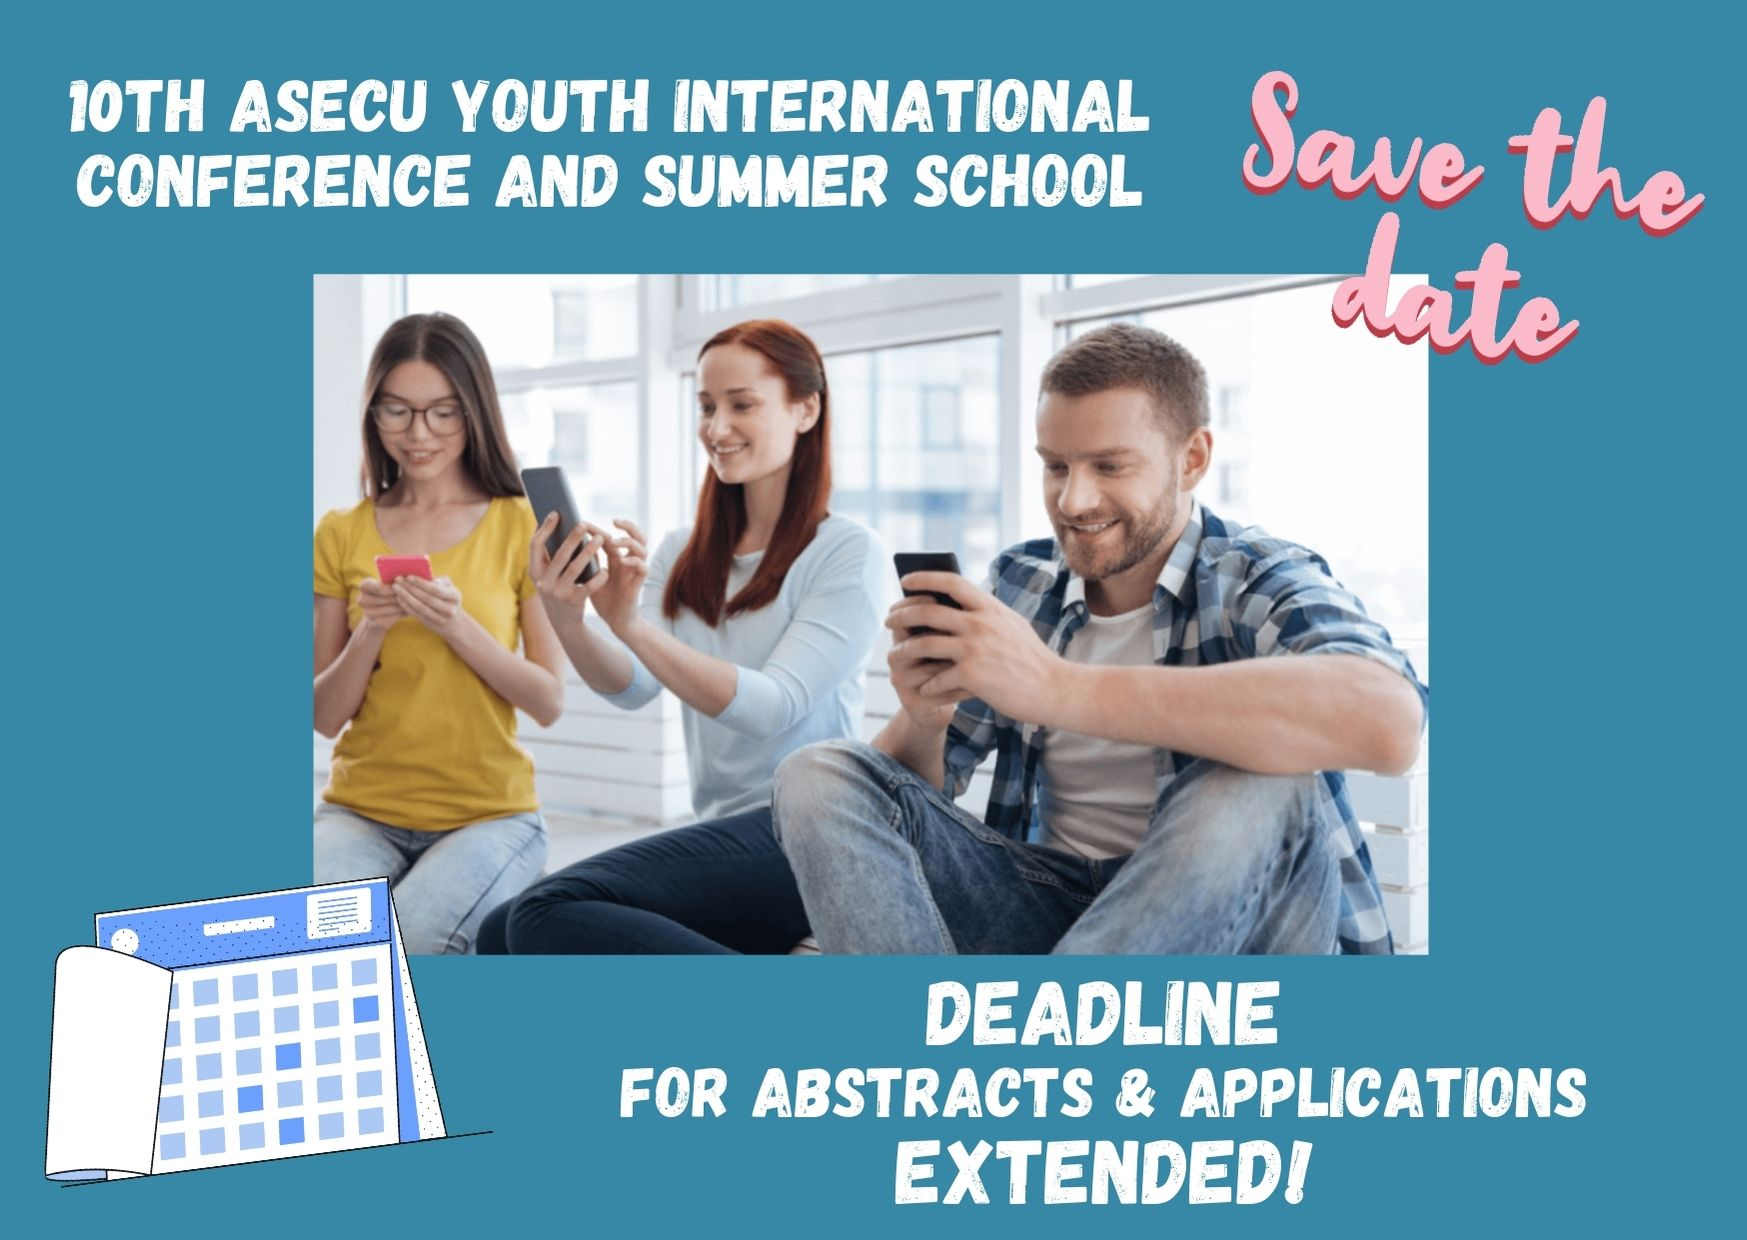 New extended deadline for abstract & application submission to the 10th AYIC&SS!